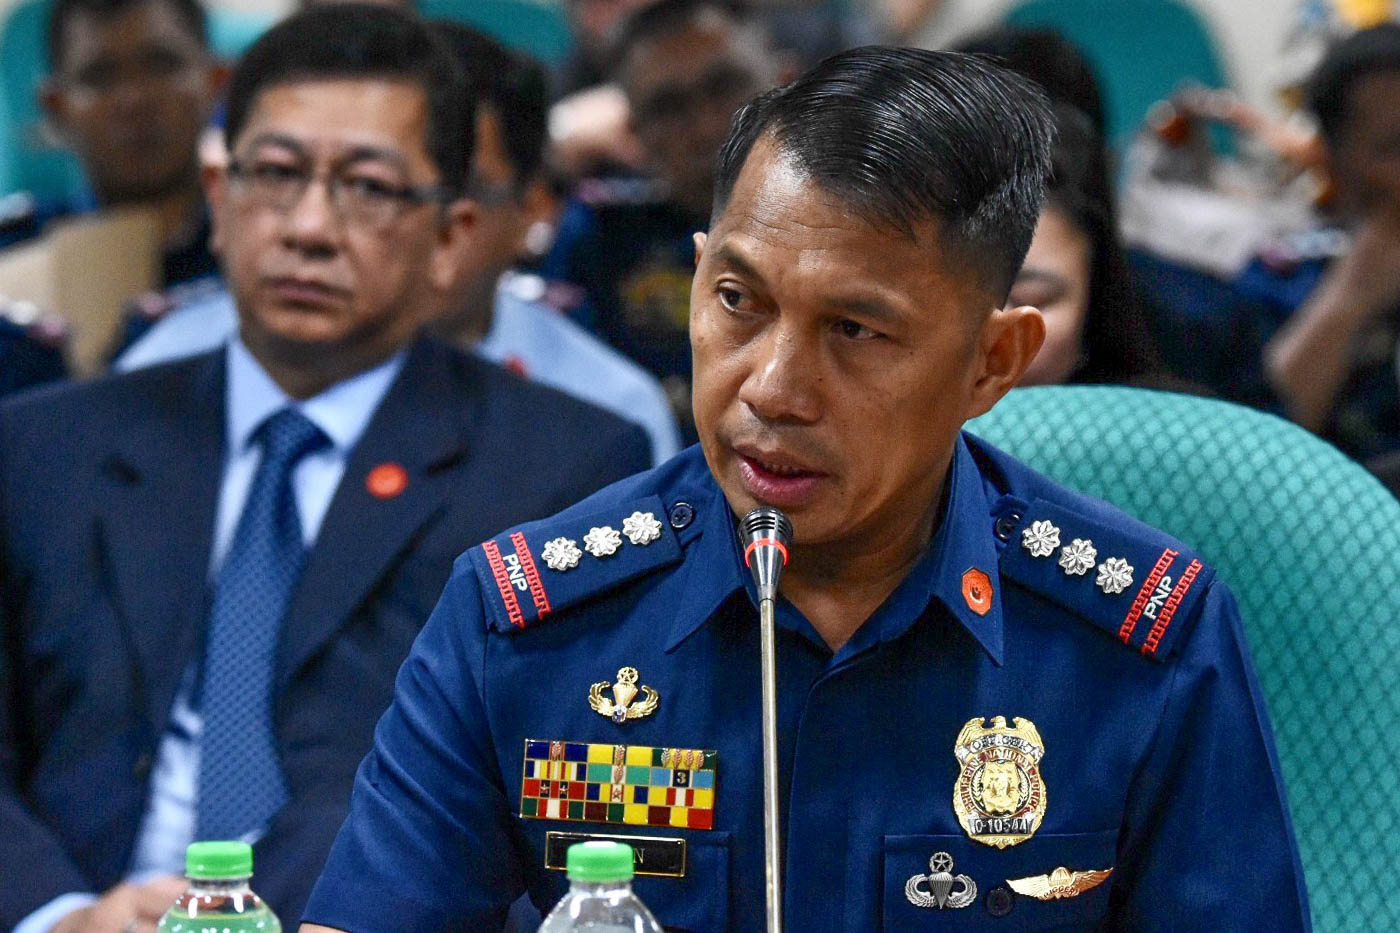 JUST FOLLOWING? Police SSupt Andre Dizon during the senate hearing on SAF funds on May 22, 2018. Photo by Angie de Silva/Rappler